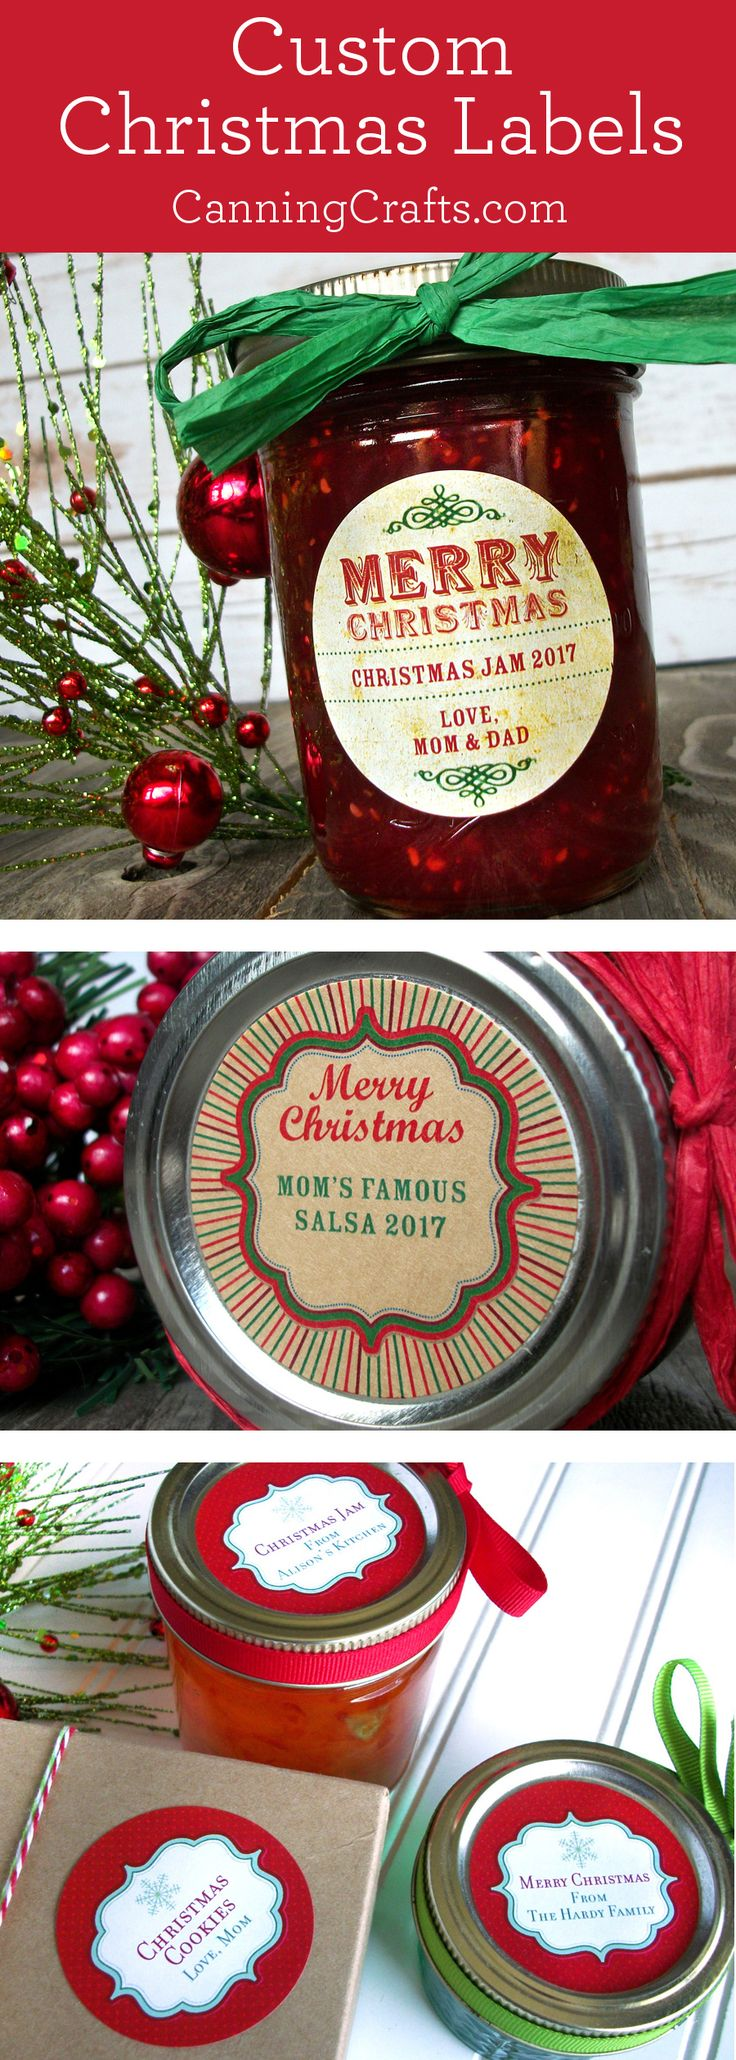 Custom Christmas canning jar labels stickers printed with YOUR text. CanningCrafts.com #canning #foodpreservation